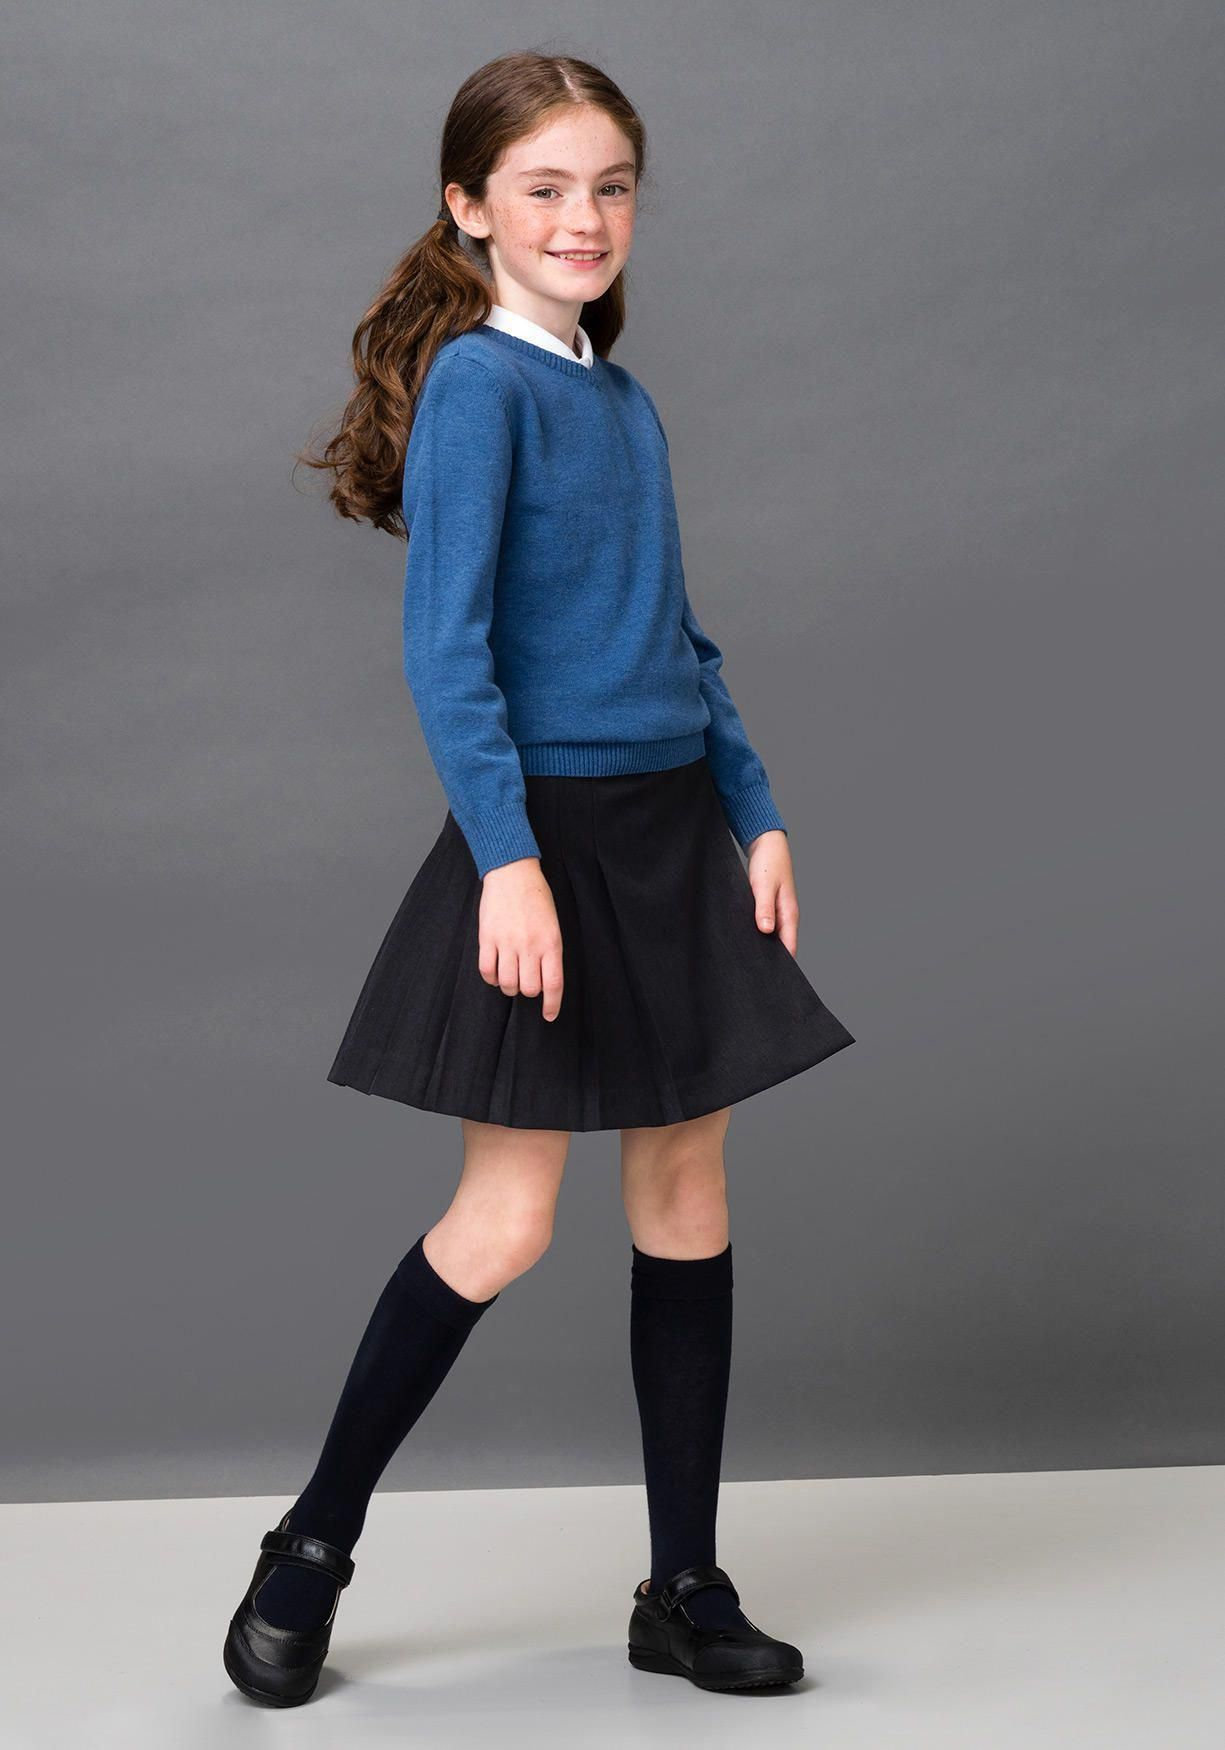 Very young little girl models asses opinion